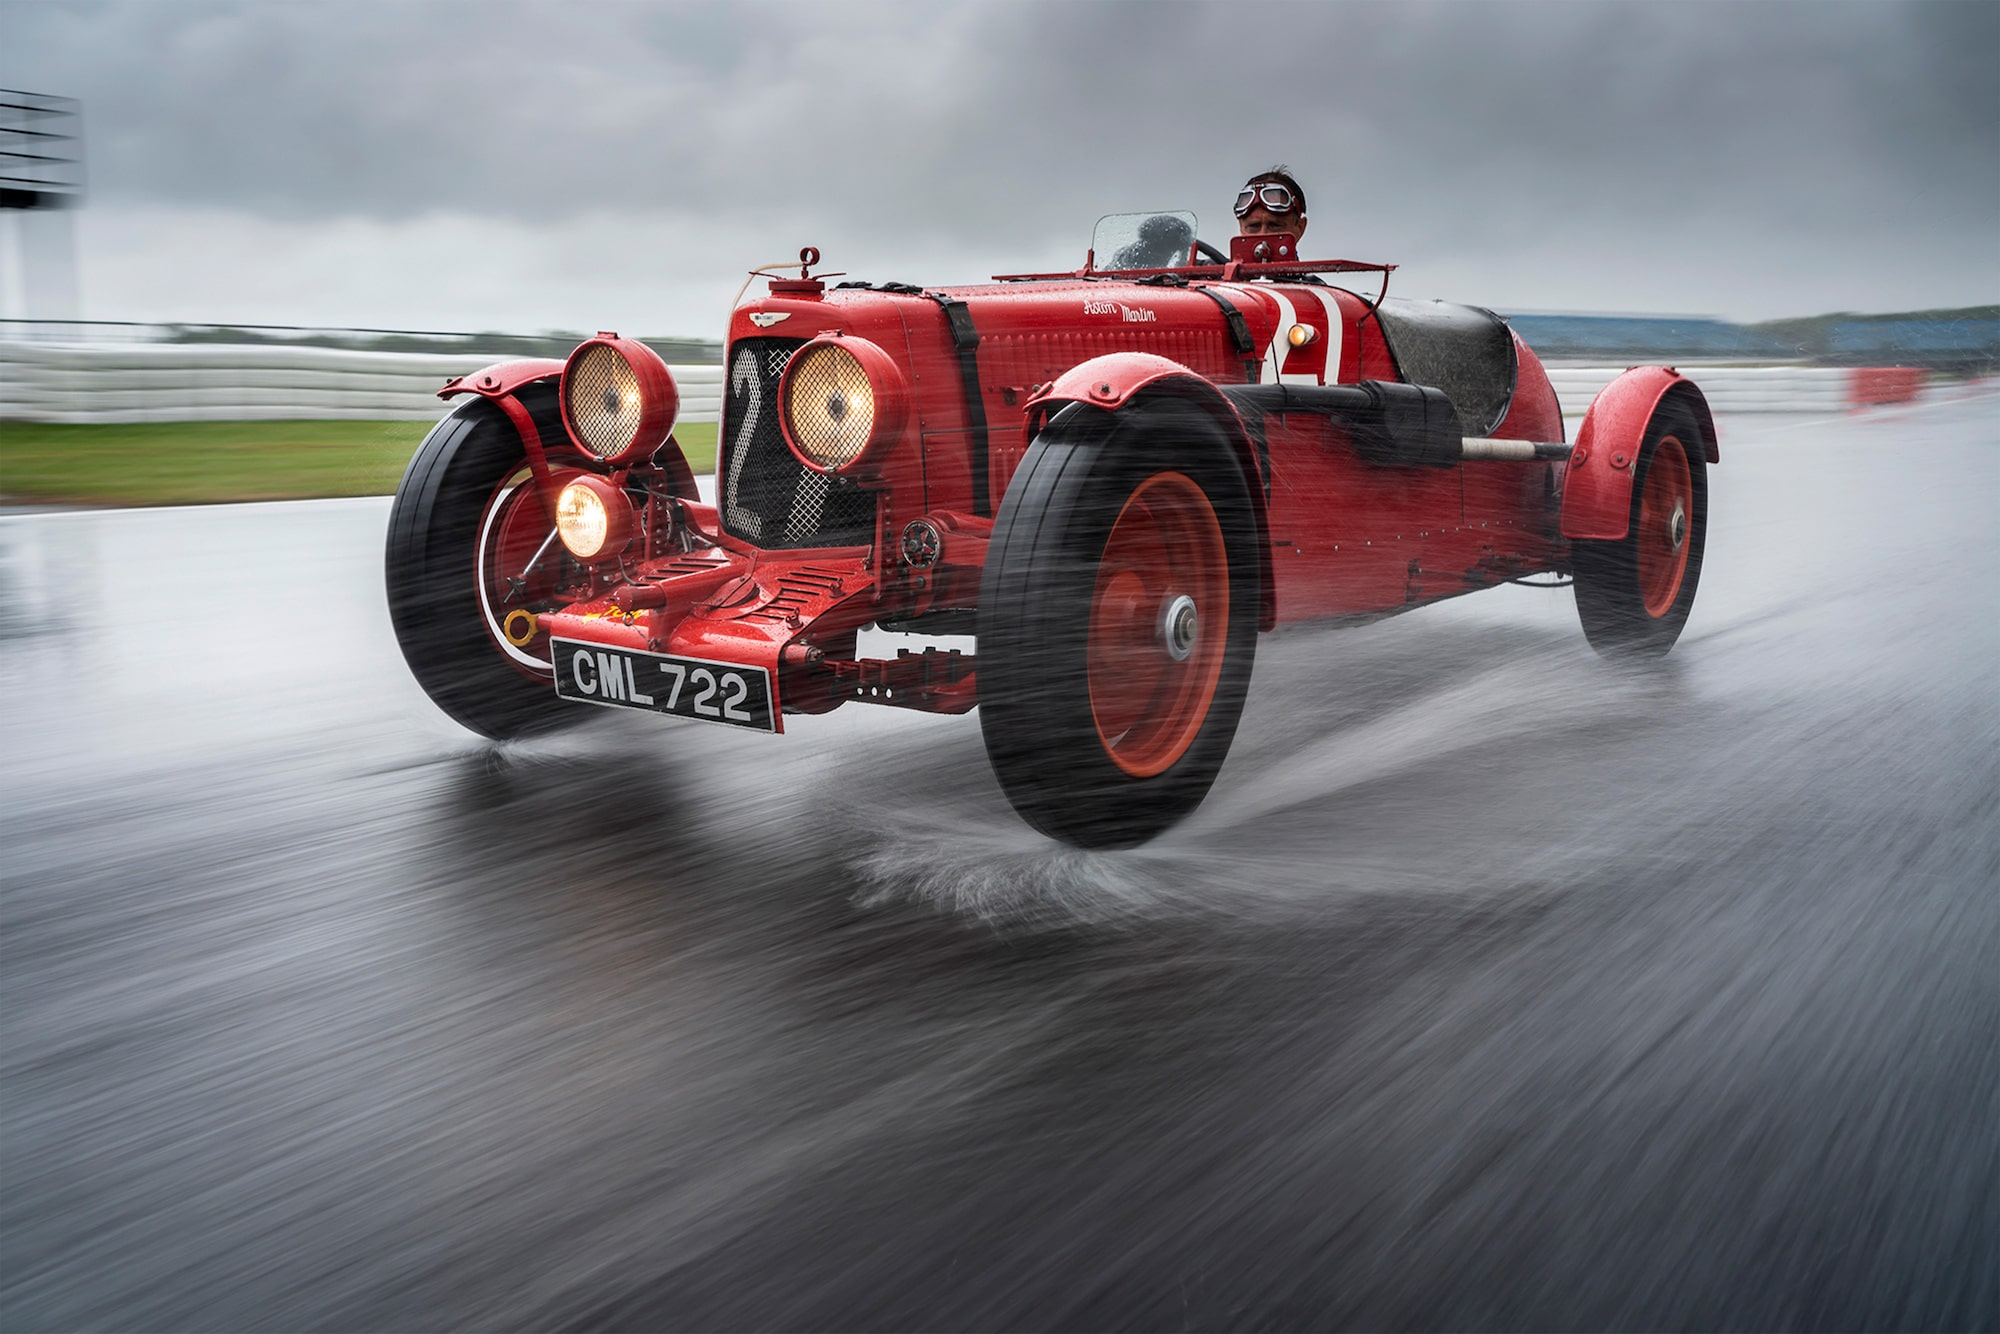 dominic fraser sony alpha 7RIII old aston martin racing car being driven at speed through the rain